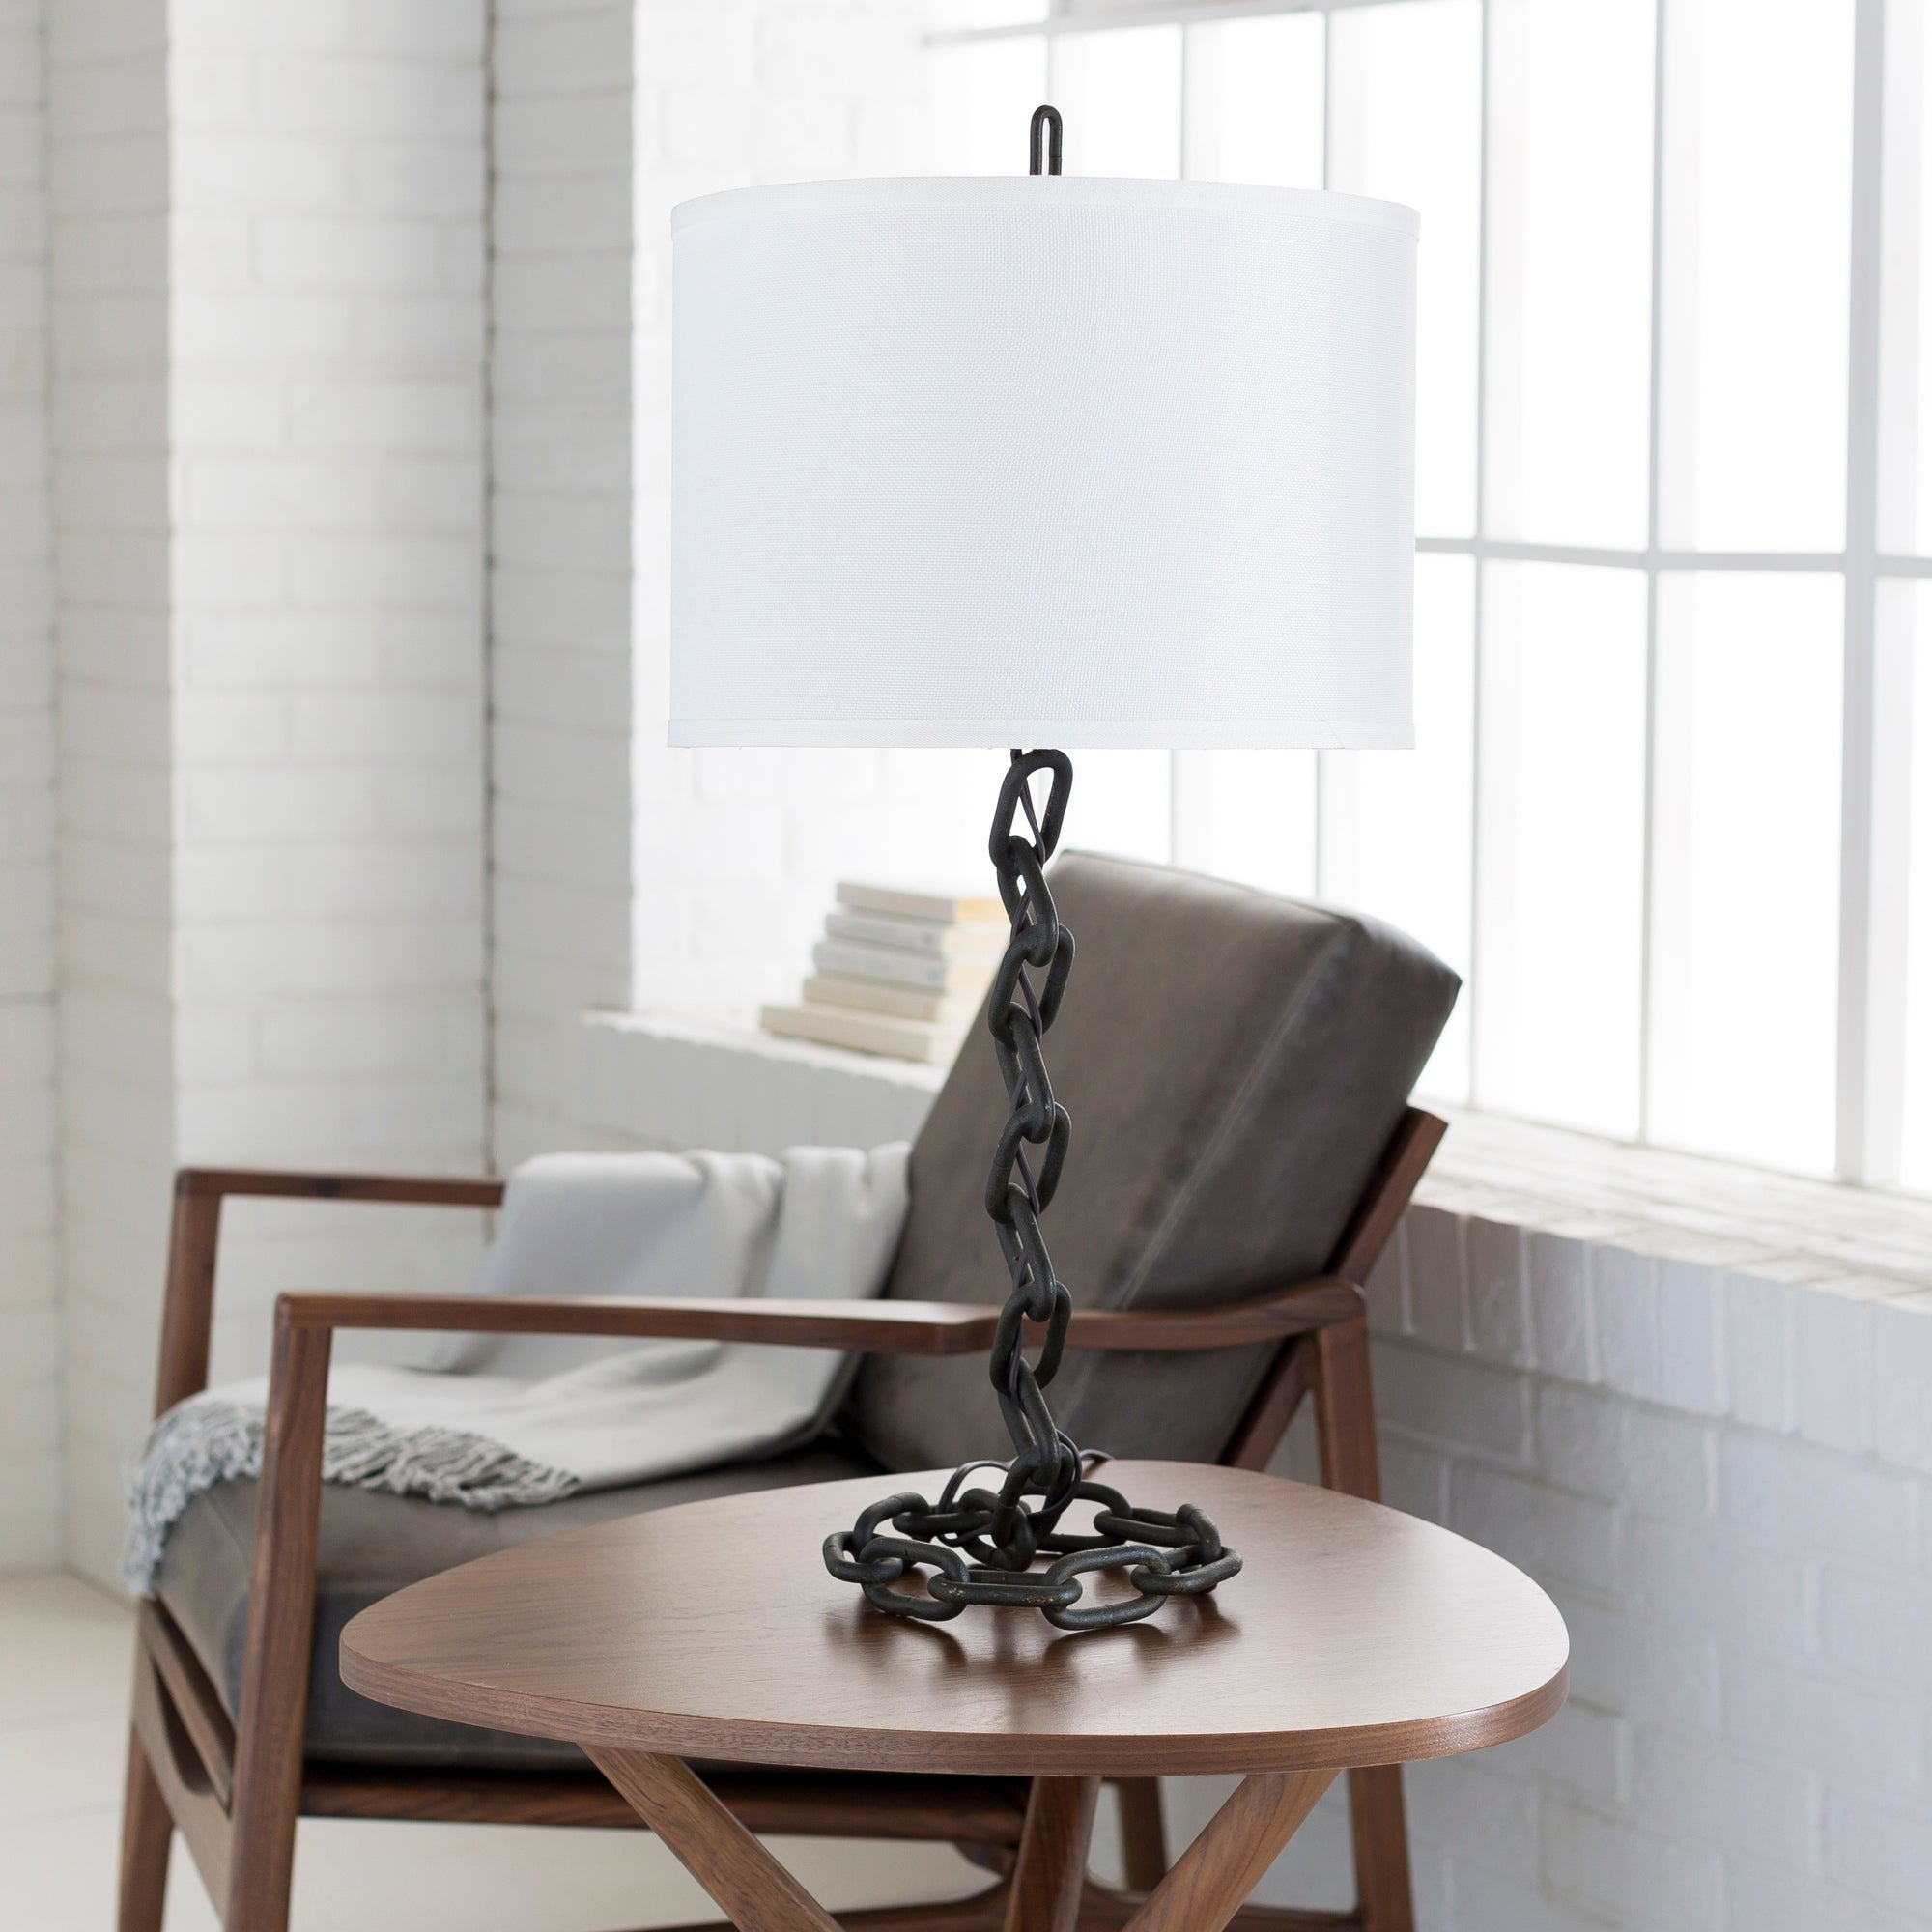 Zaanne table lamp with black base and white shade ebay zaanne table lamp with black base and white shade aloadofball Gallery